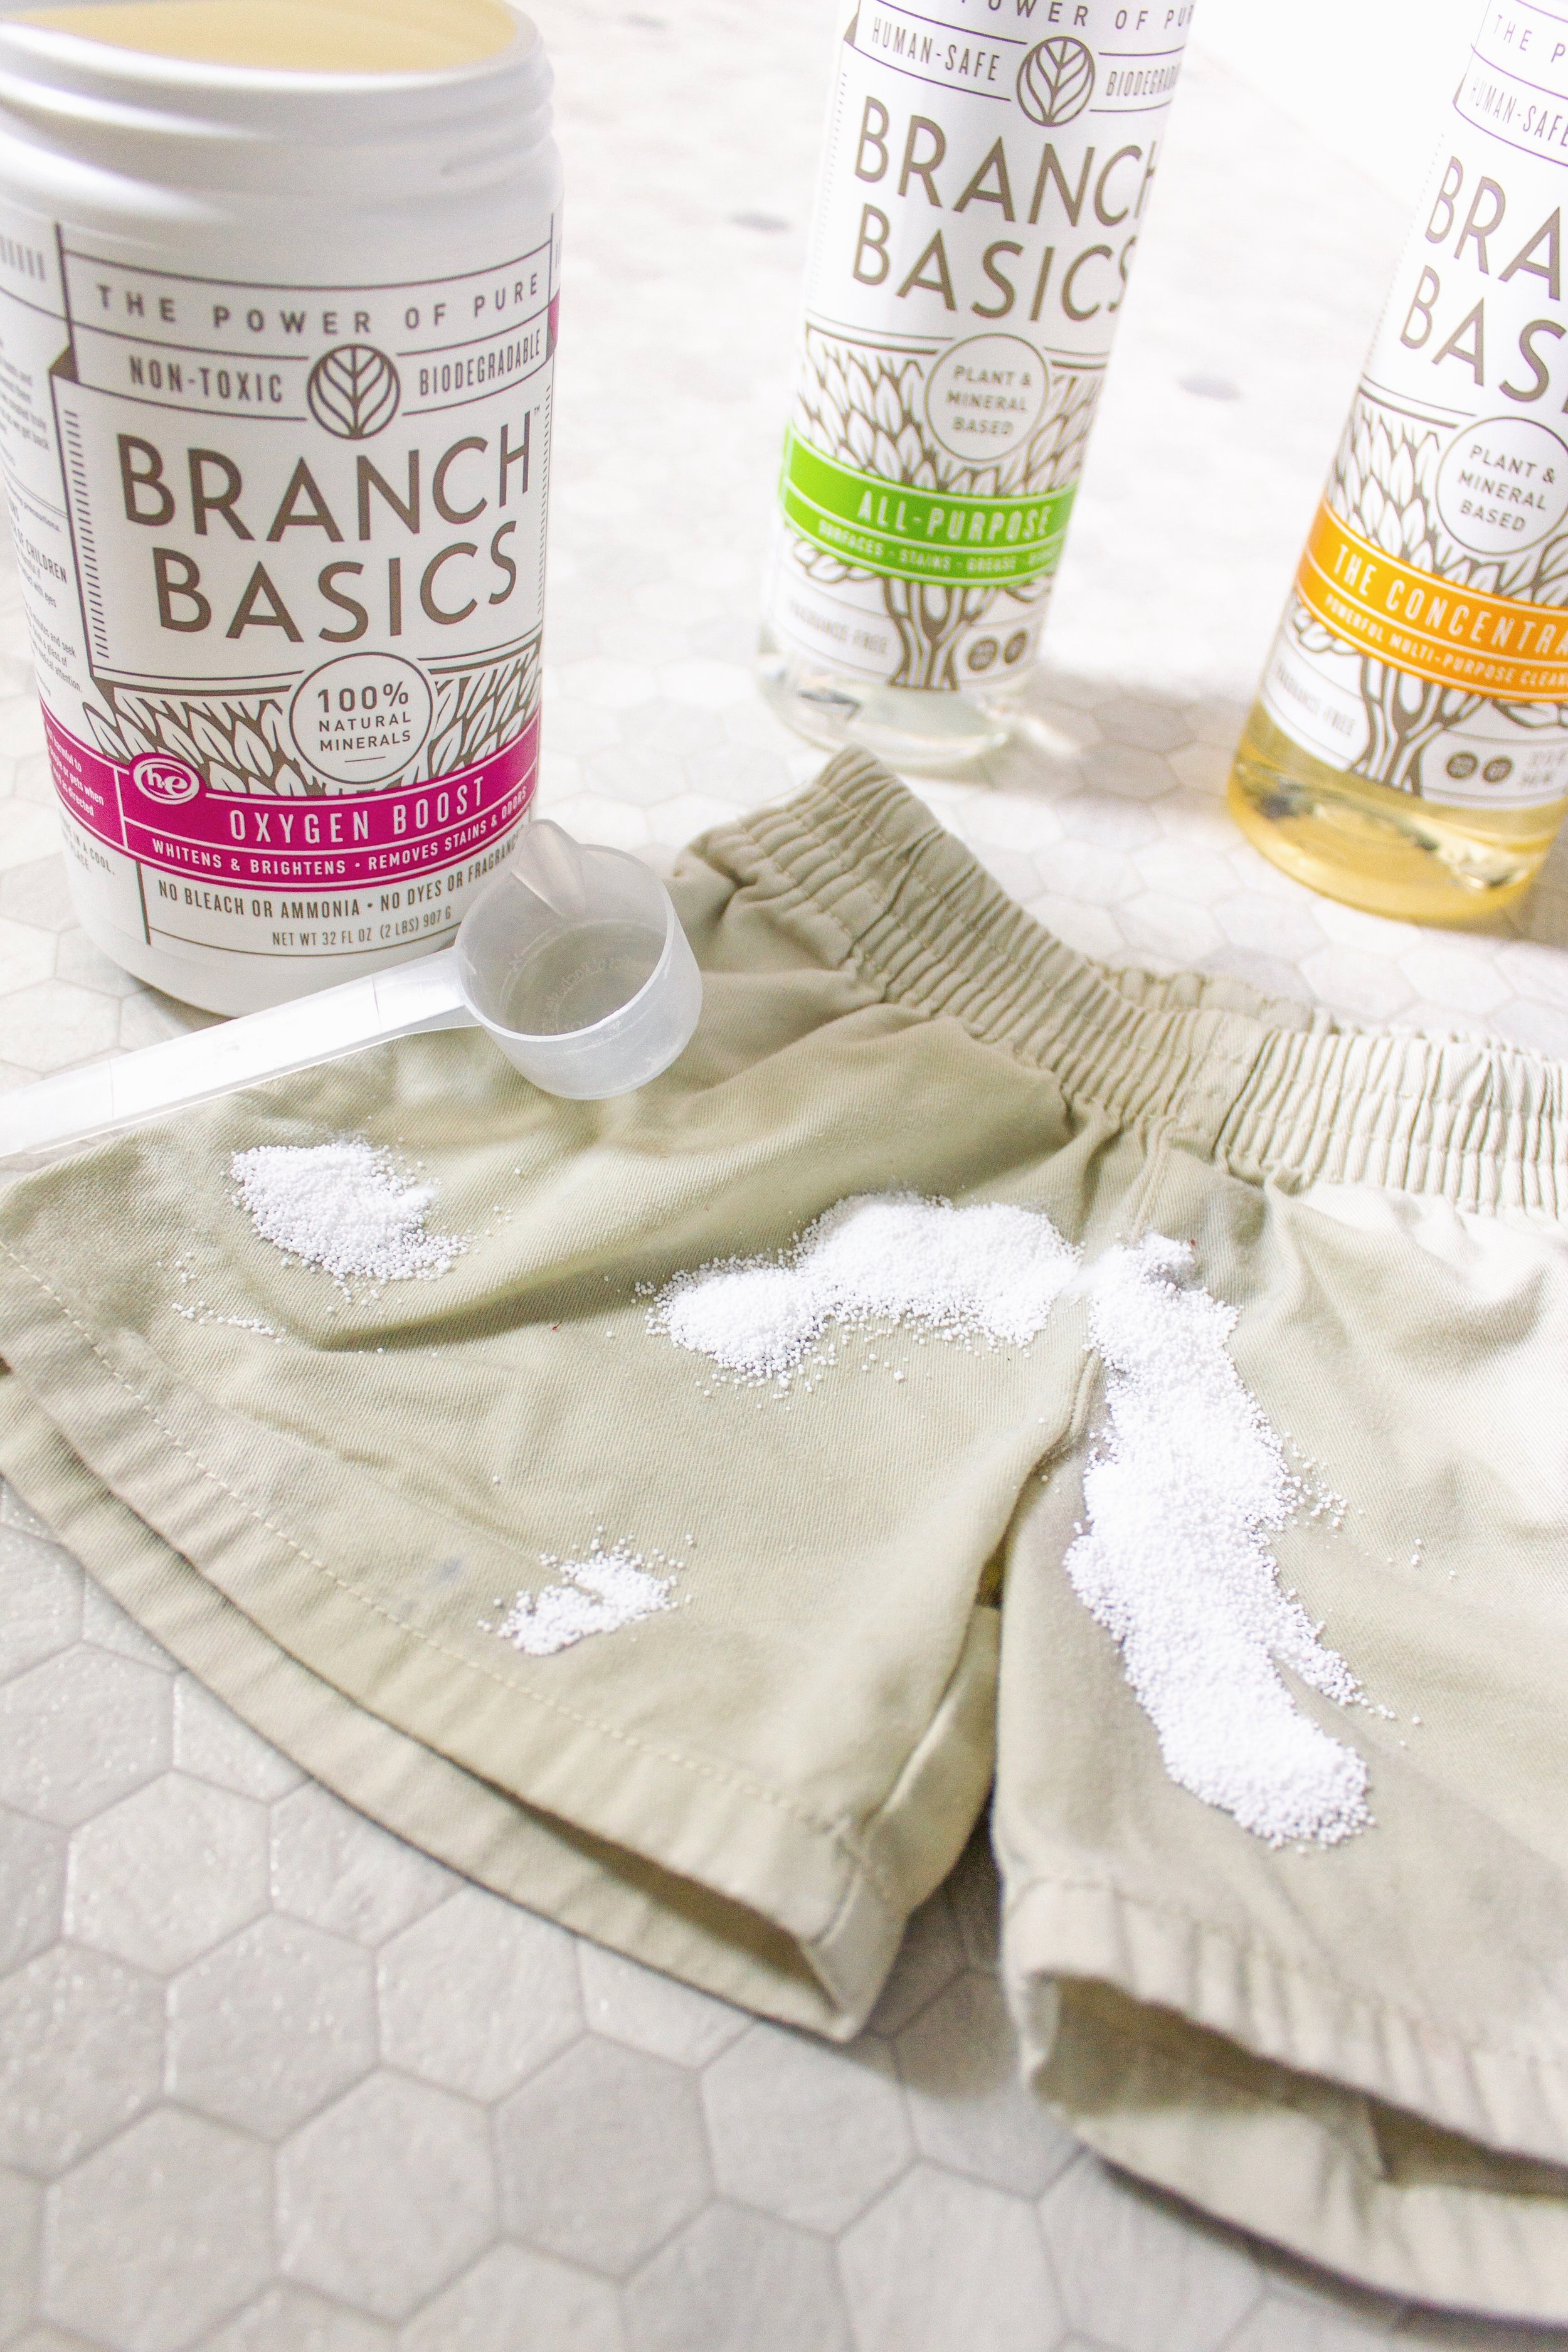 STEP TWO: Scoop Branch Basics Oxygen Boost - Scoop Branch Basics Oxygen Boost over the stain, making sure to cover the entire stain.